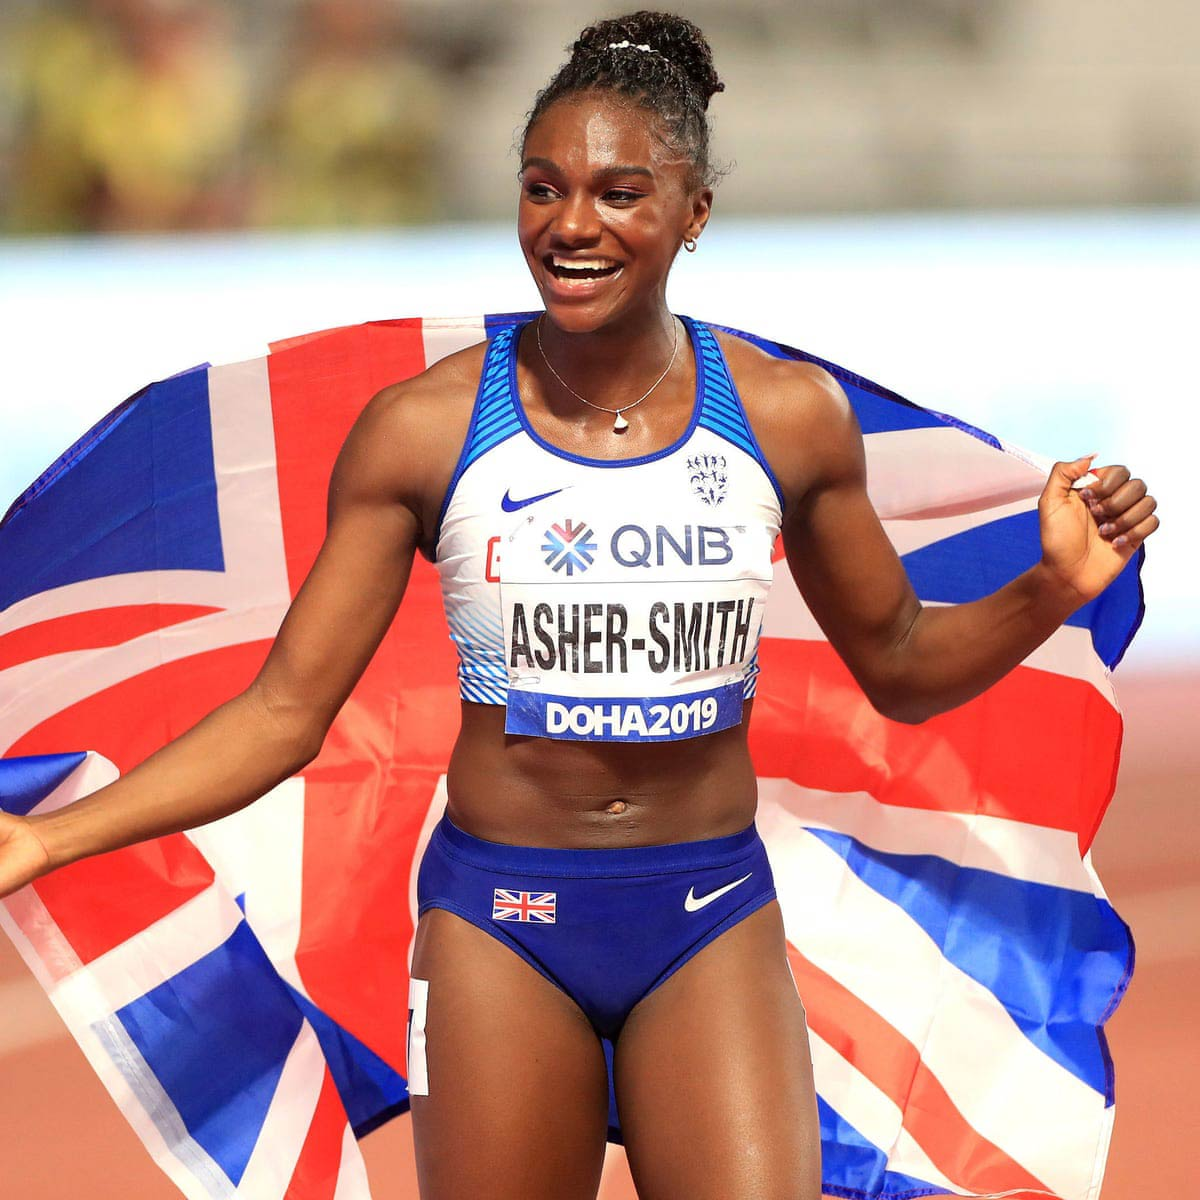 Dina ran the 100 meters in 10.83 seconds at the World Athletics Championships in Doha 2019